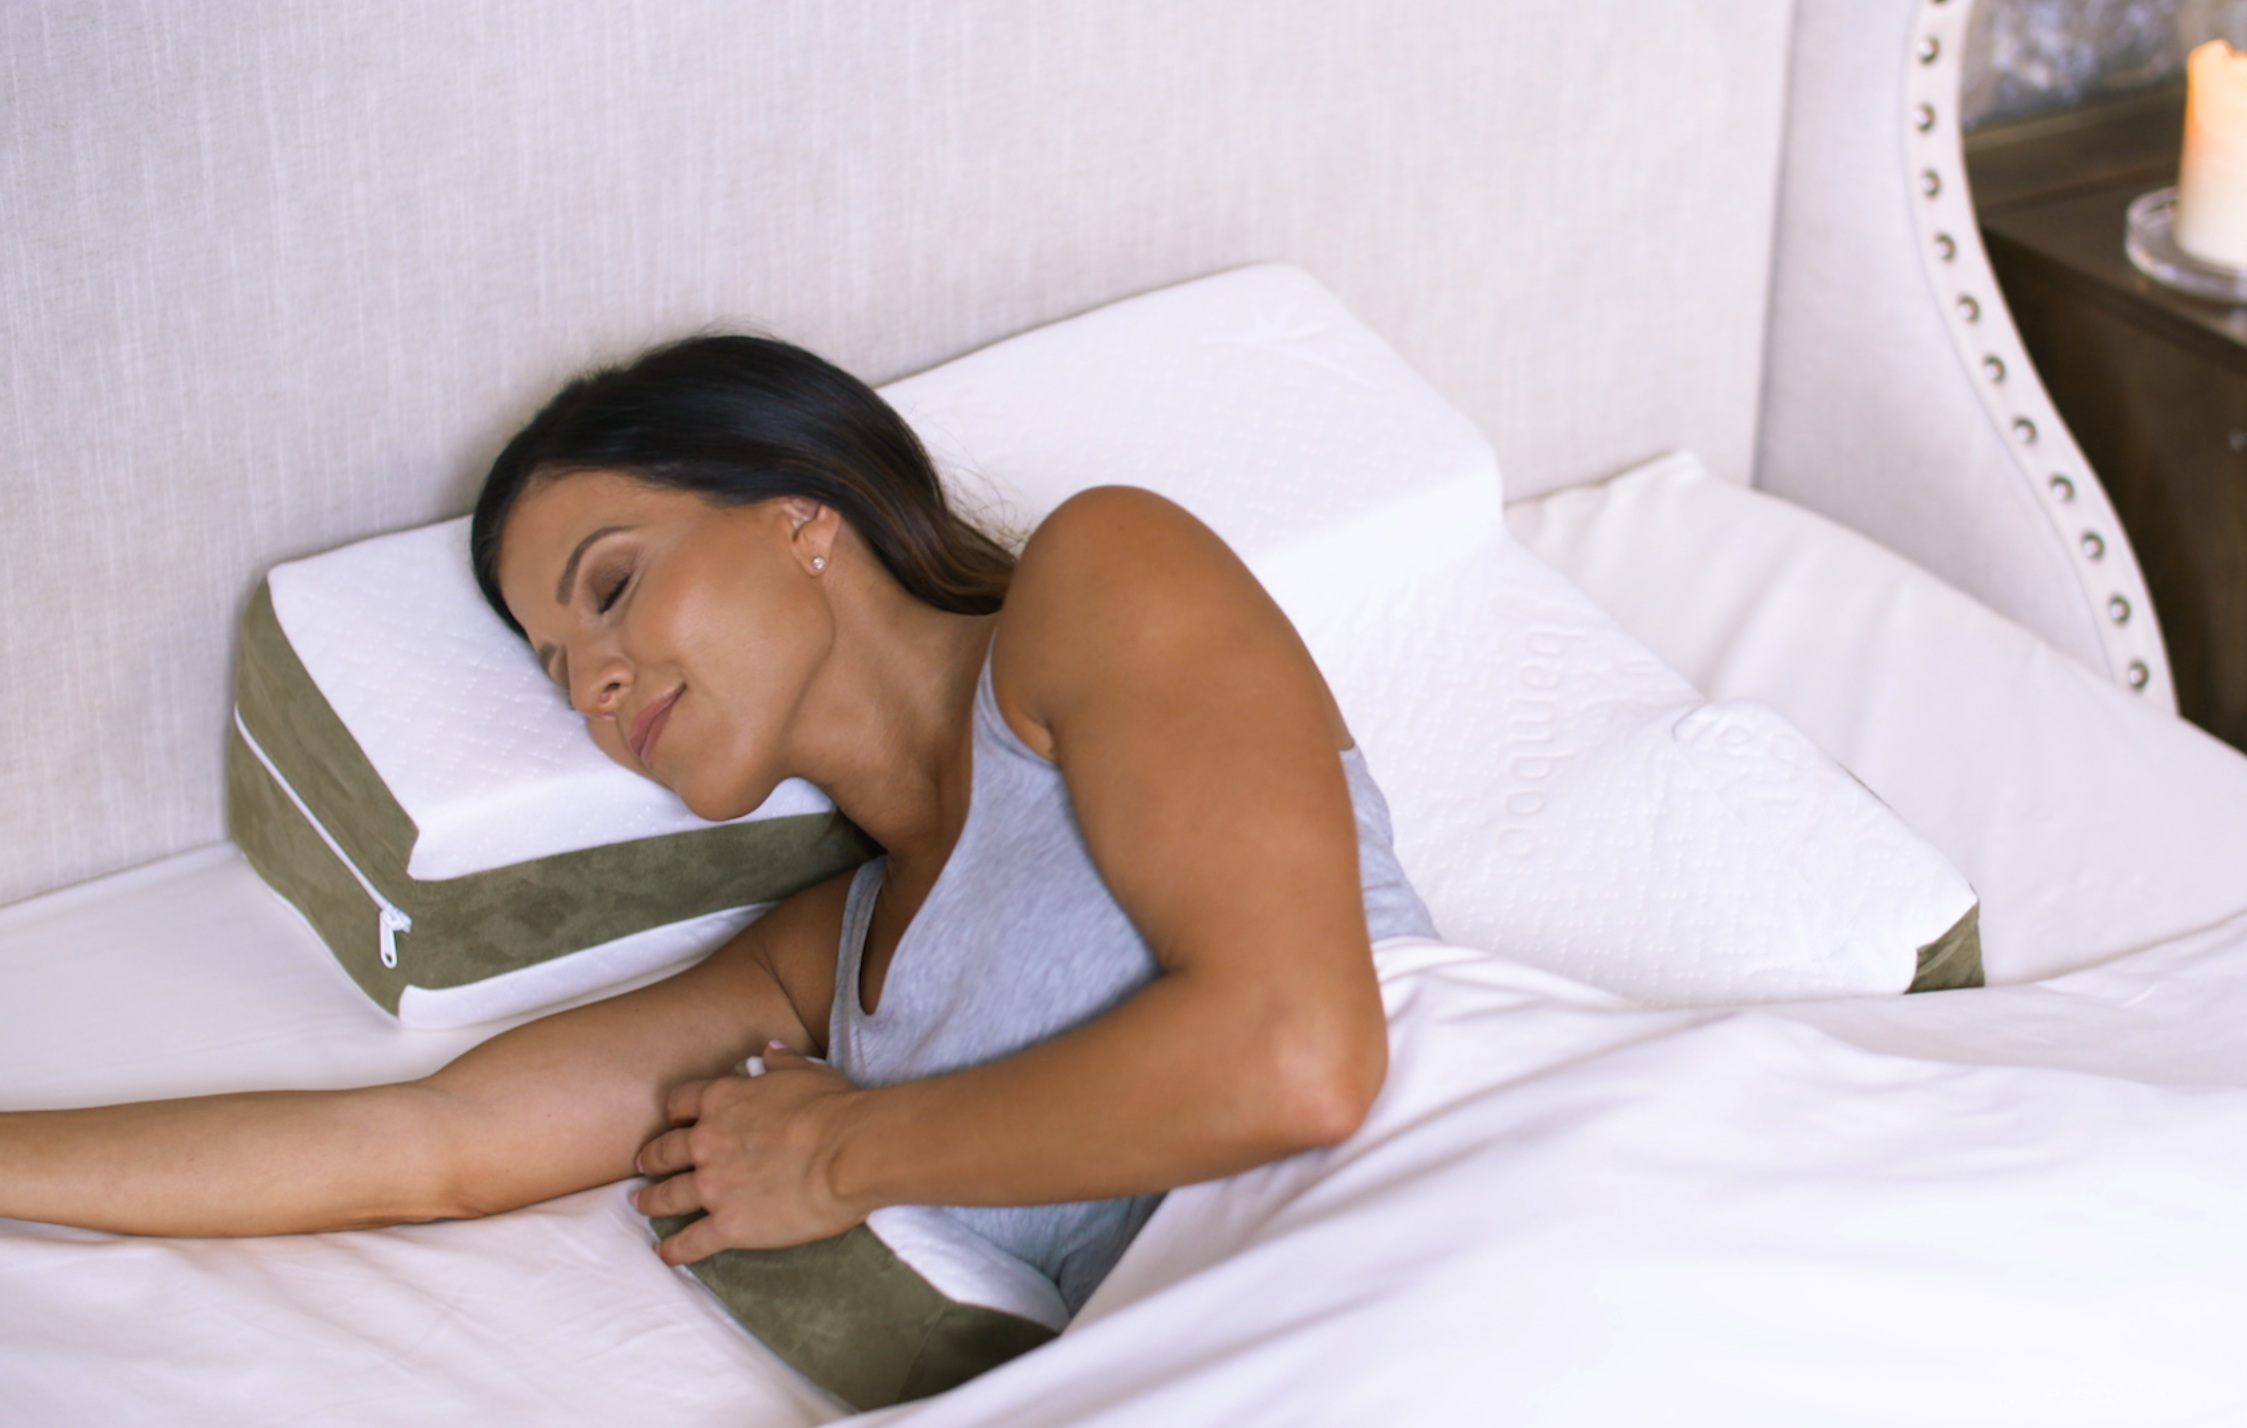 Snug Position - Simply turn onto your side so the shoulder drops into the cutout.